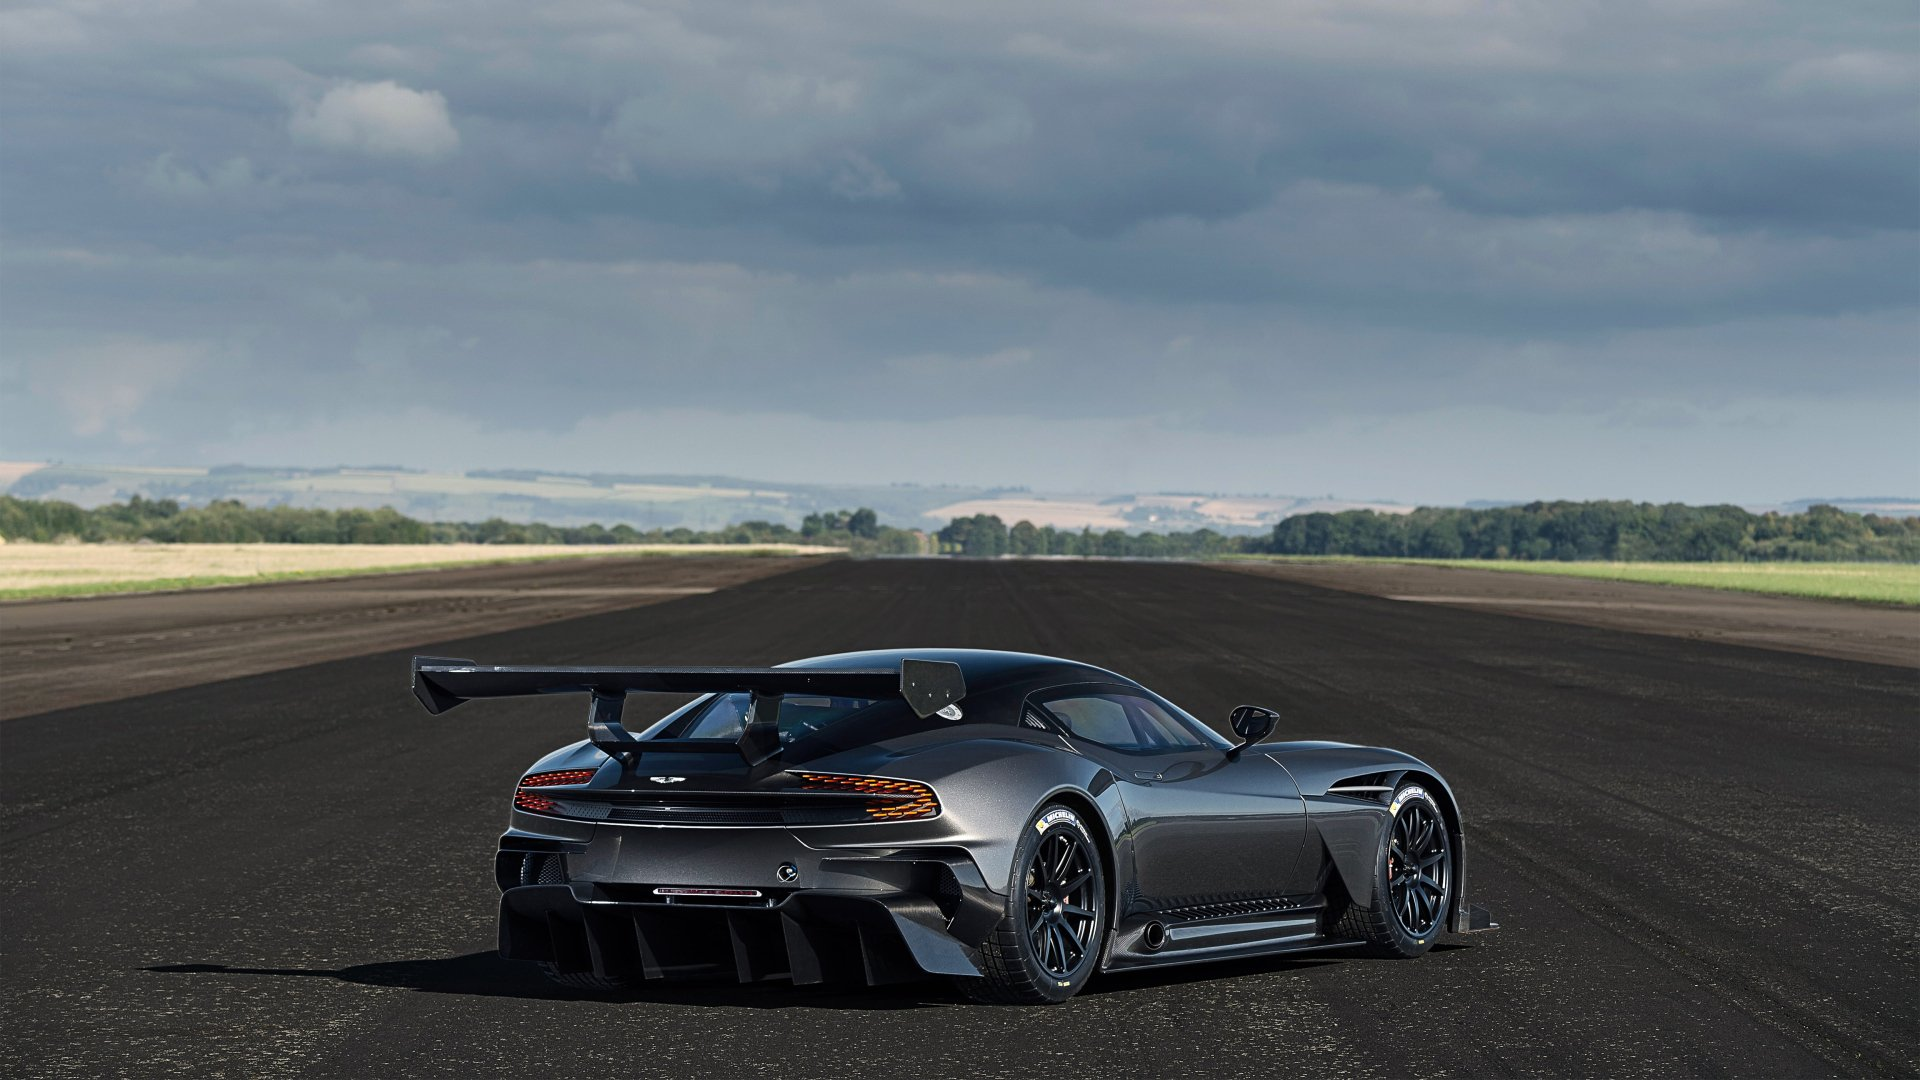 Vehicles - Aston Martin Vulcan  Aston Martin Hypercar Race Car Wallpaper